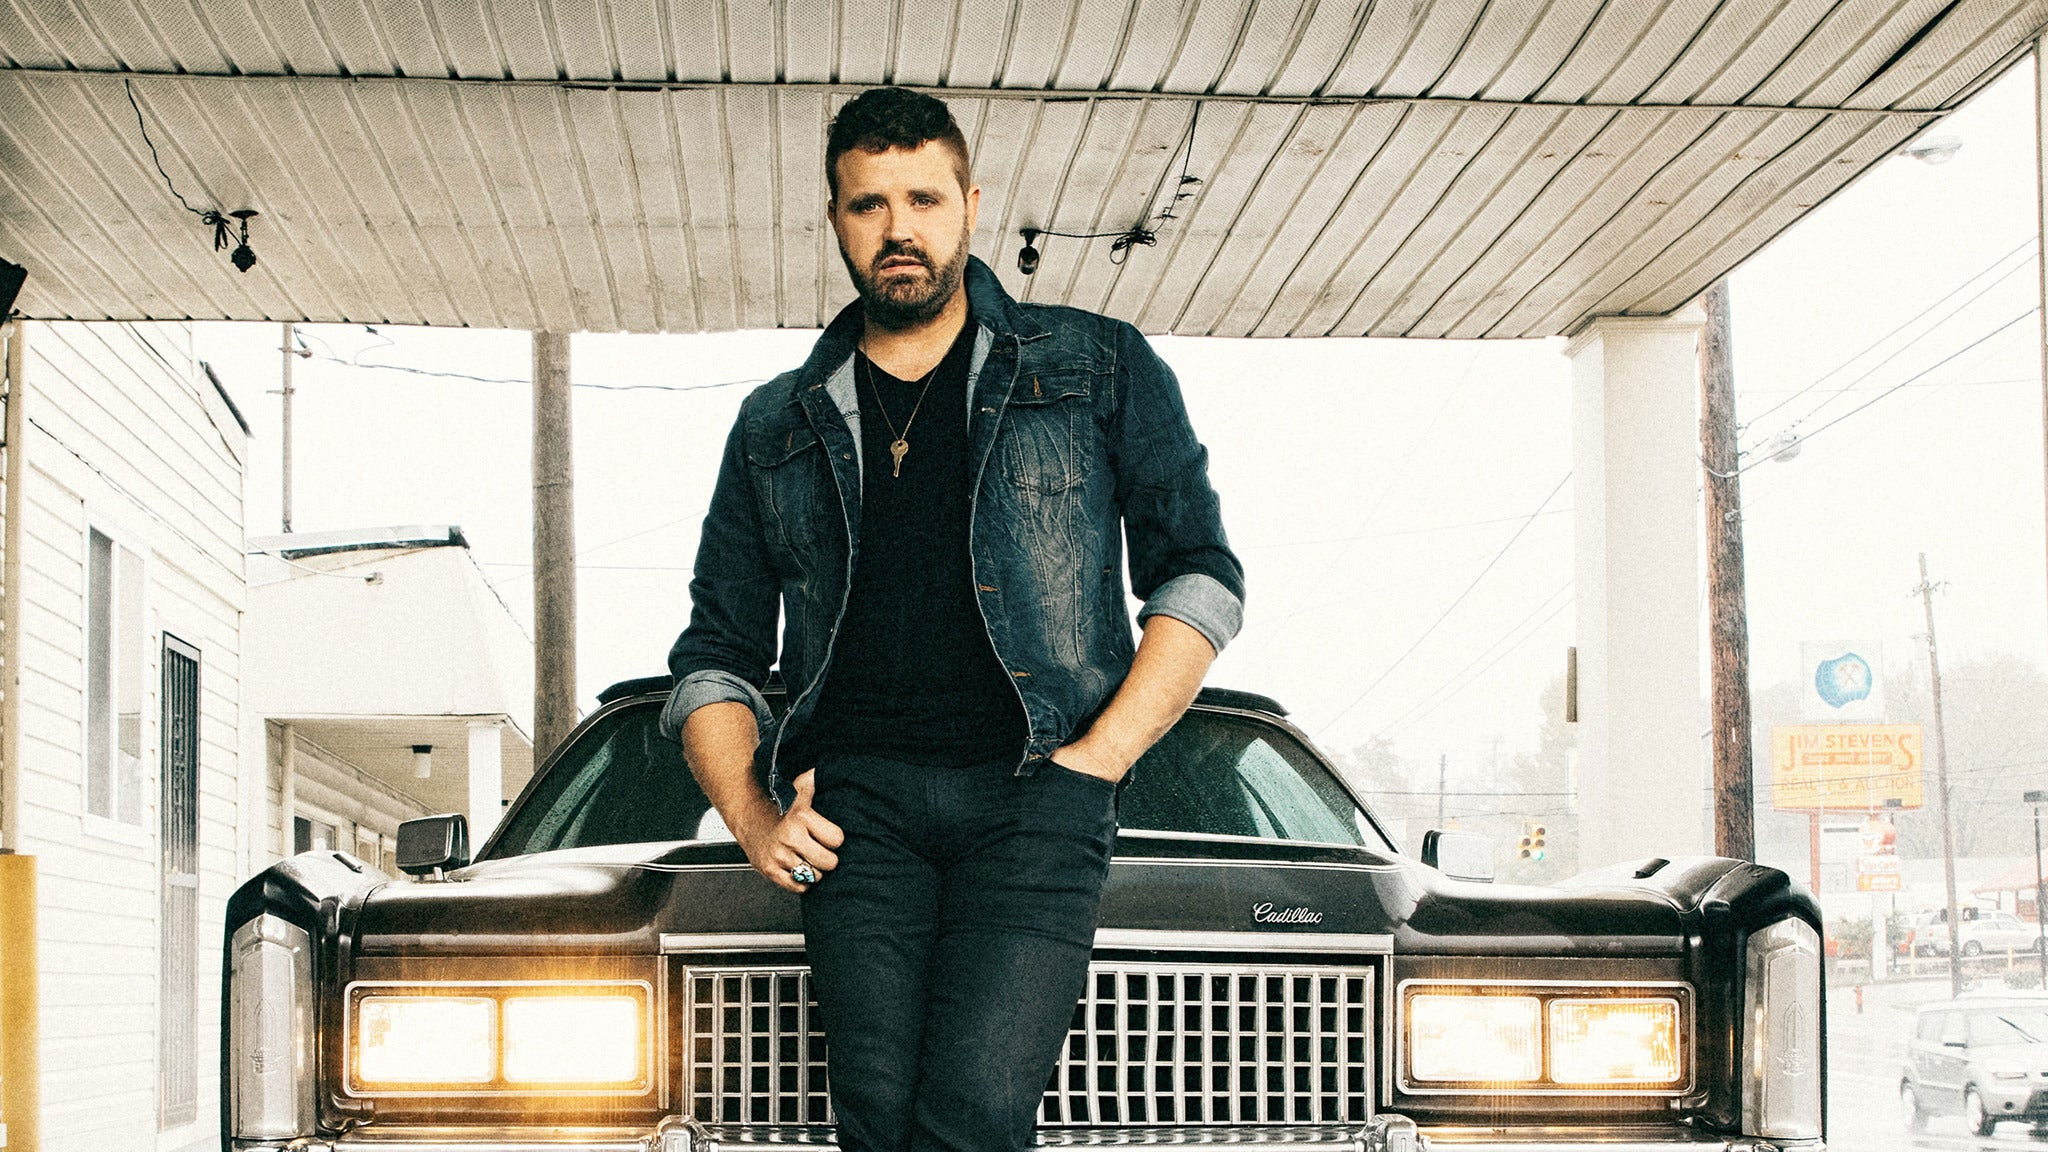 Randy Houser at Wind Creek Casino & Hotel - Wetumpka